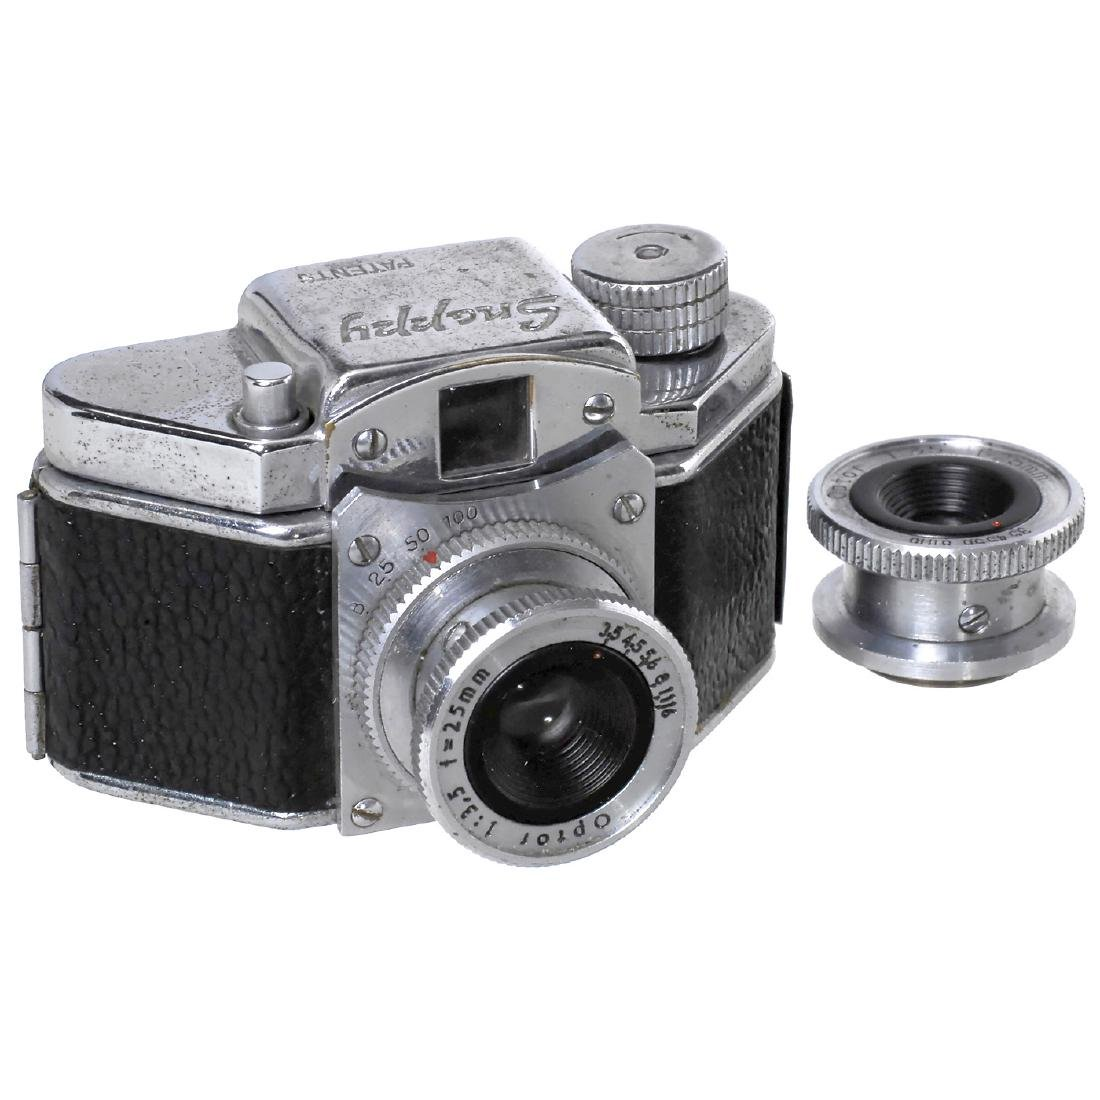 Snappy with 2 Lenses, c. 1949